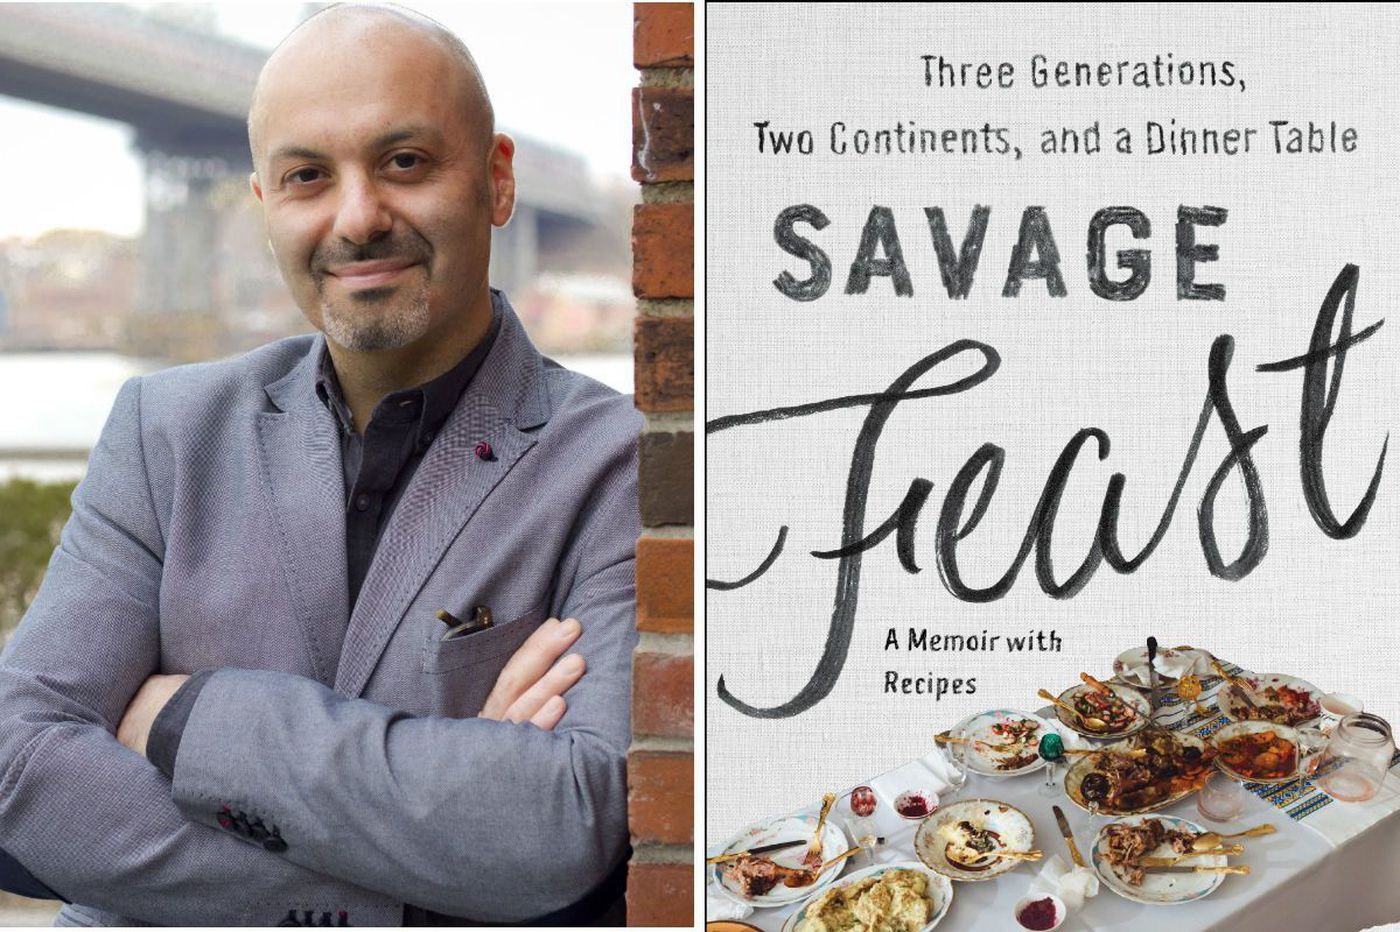 'Savage Feast' by Boris Fishman: A memoir of redemption by cooking